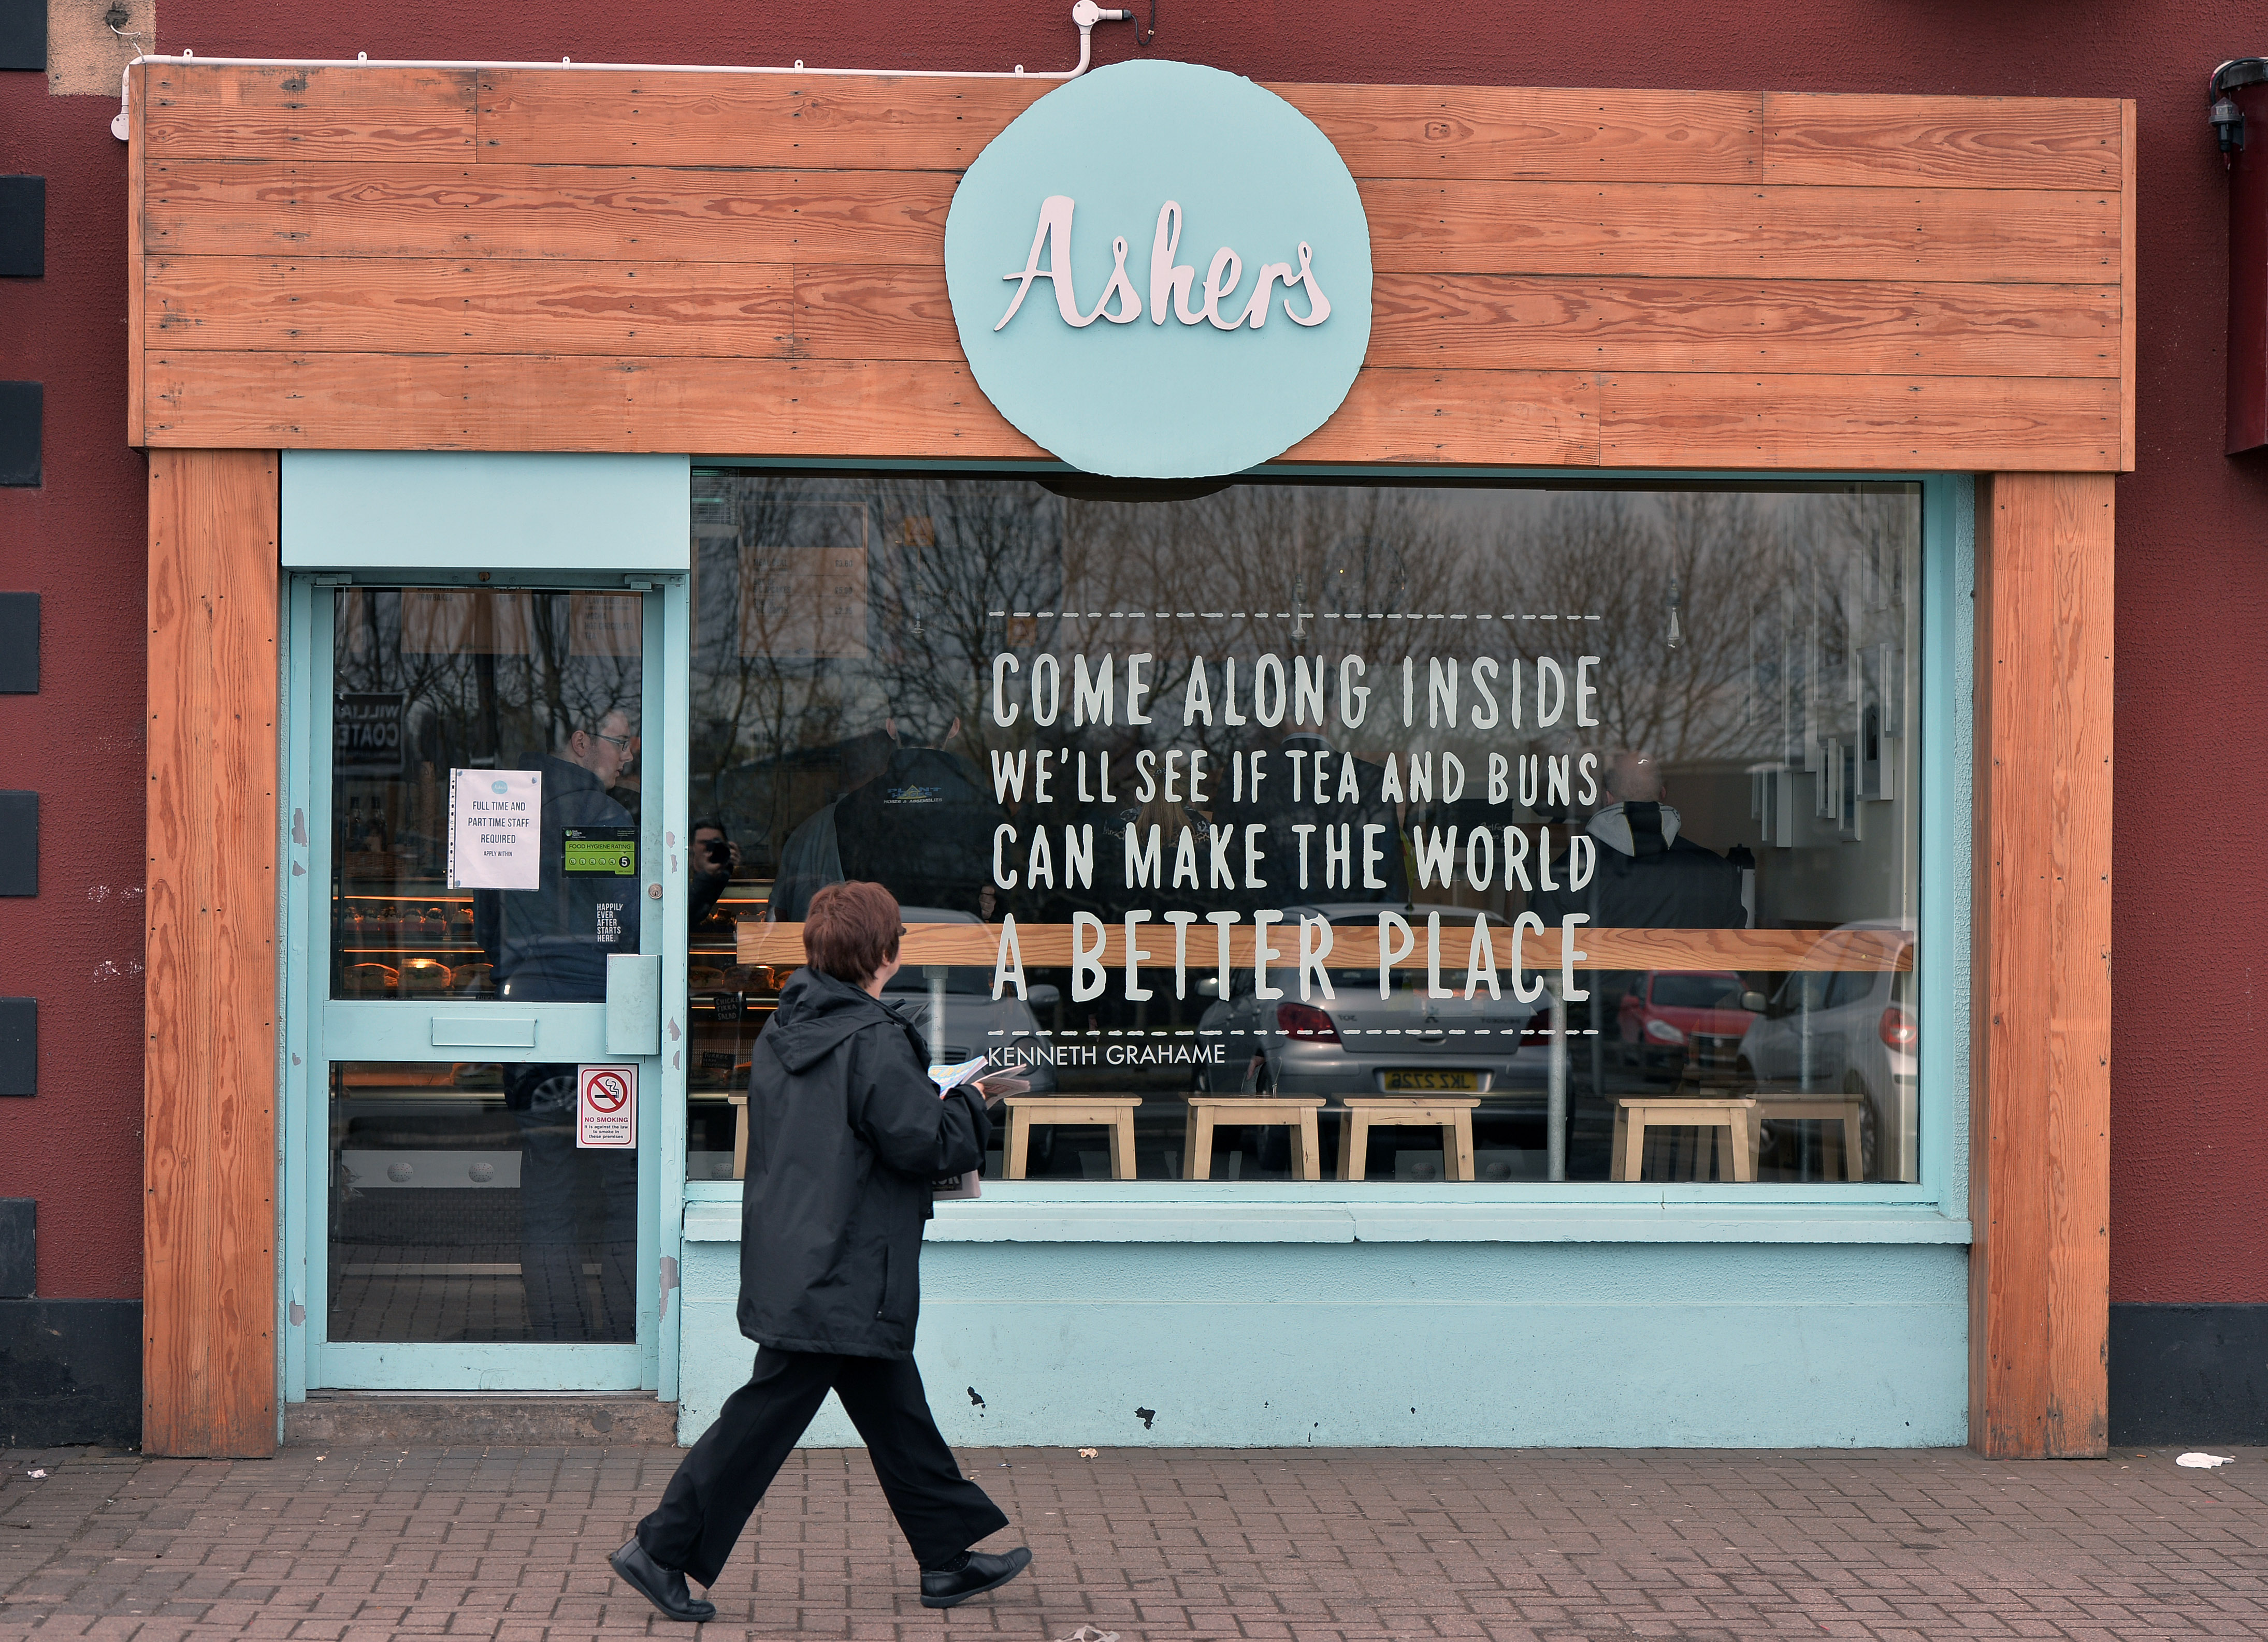 Ashers, a Christian-run bakery triggered a discrimination row when it refused to bake a cake for an anti-homophobic event in May, 2014.